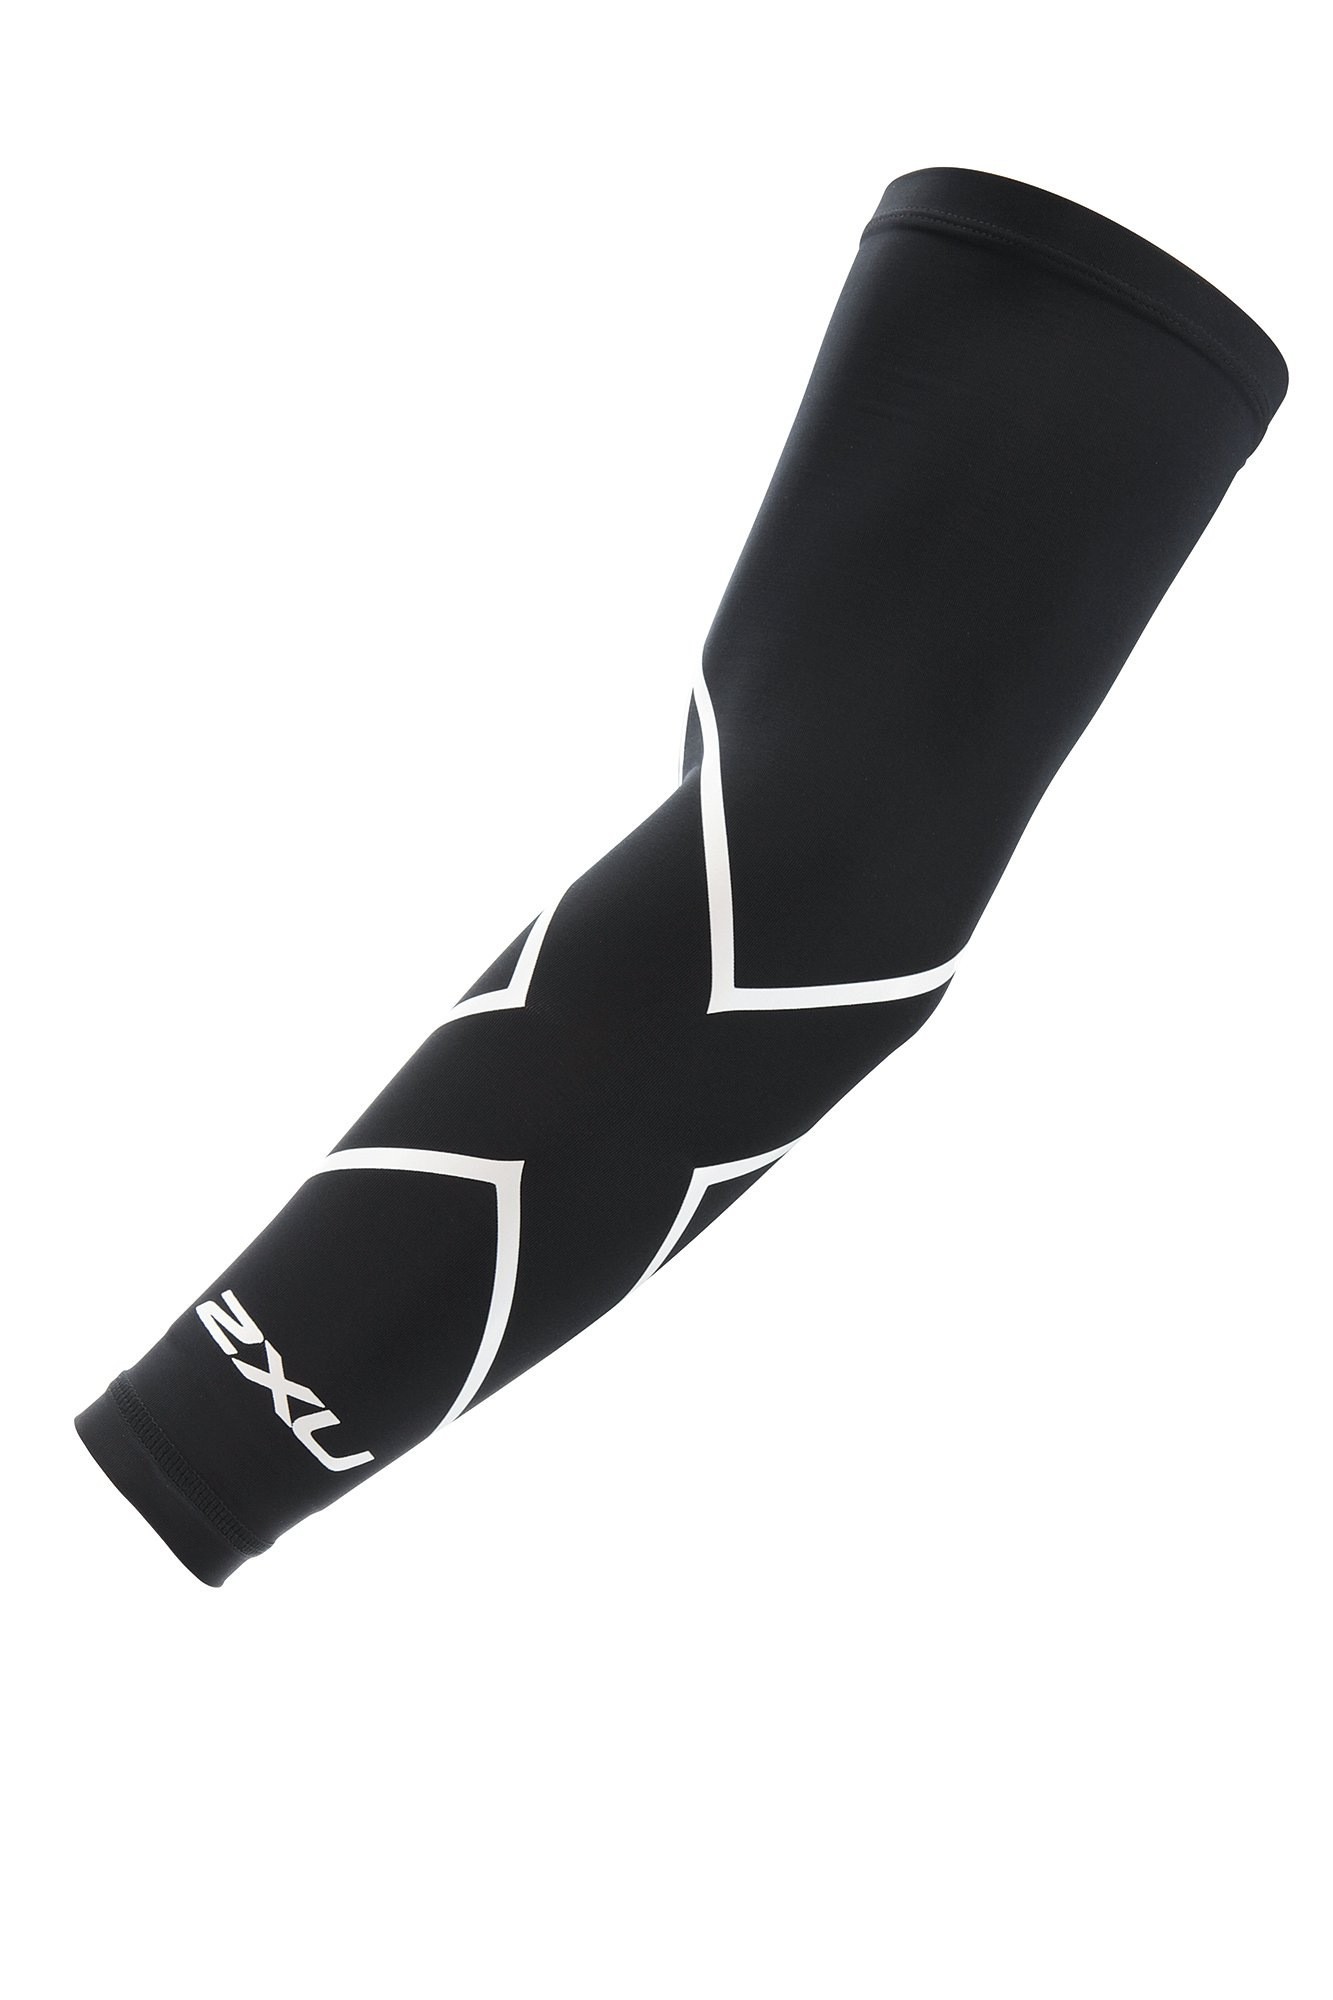 2XU Compression Single Arm Guard, Black/White, X-Small by 2XU (Image #2)